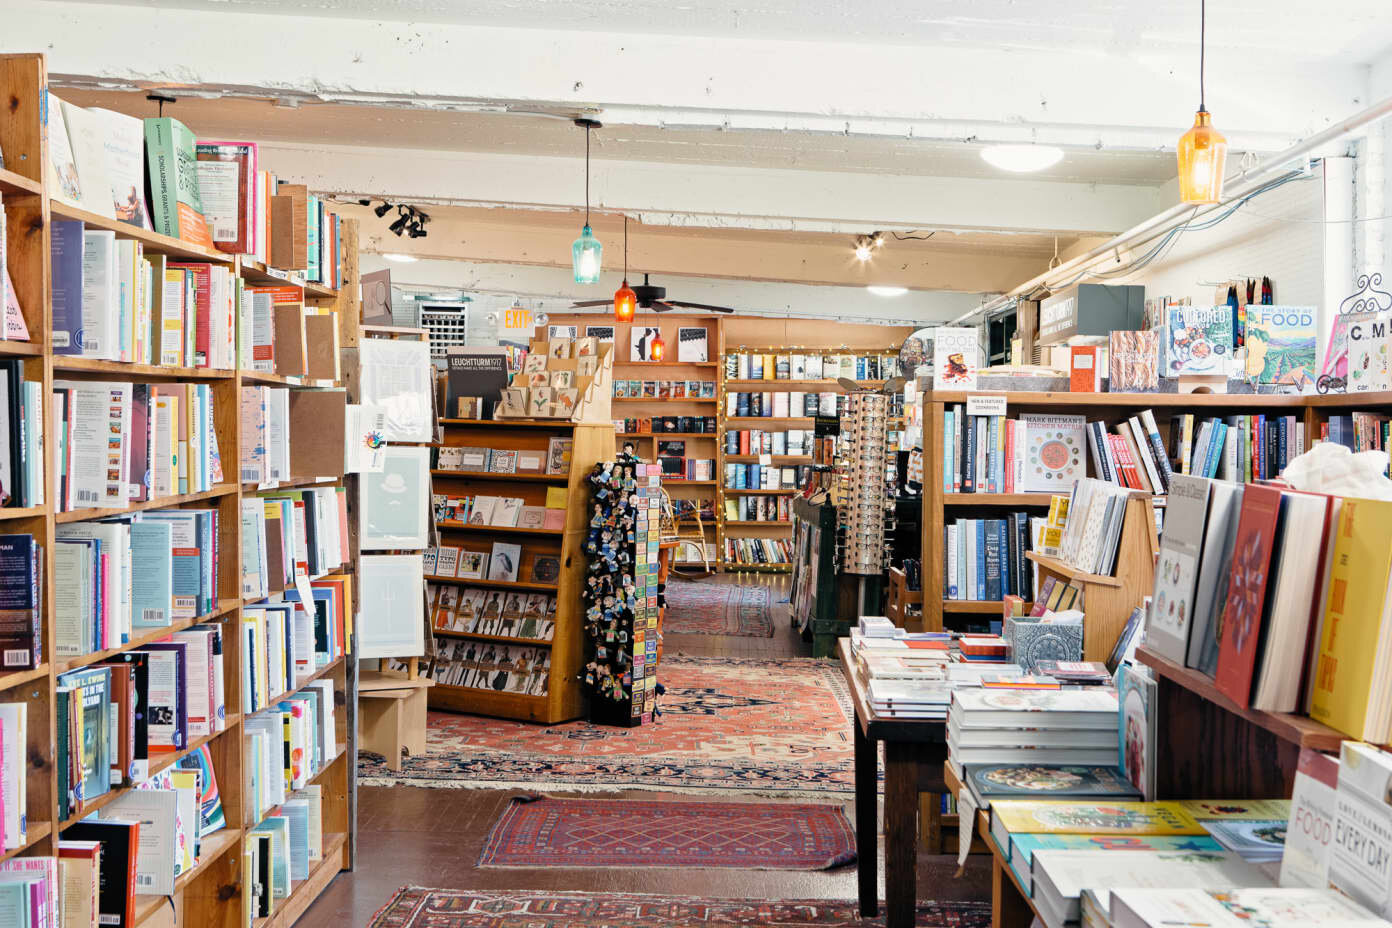 blog_bookends and beginnings_at_coolest suburbs_2019_evanston-il_evanston-il-bookends-beginnings-3.jpg